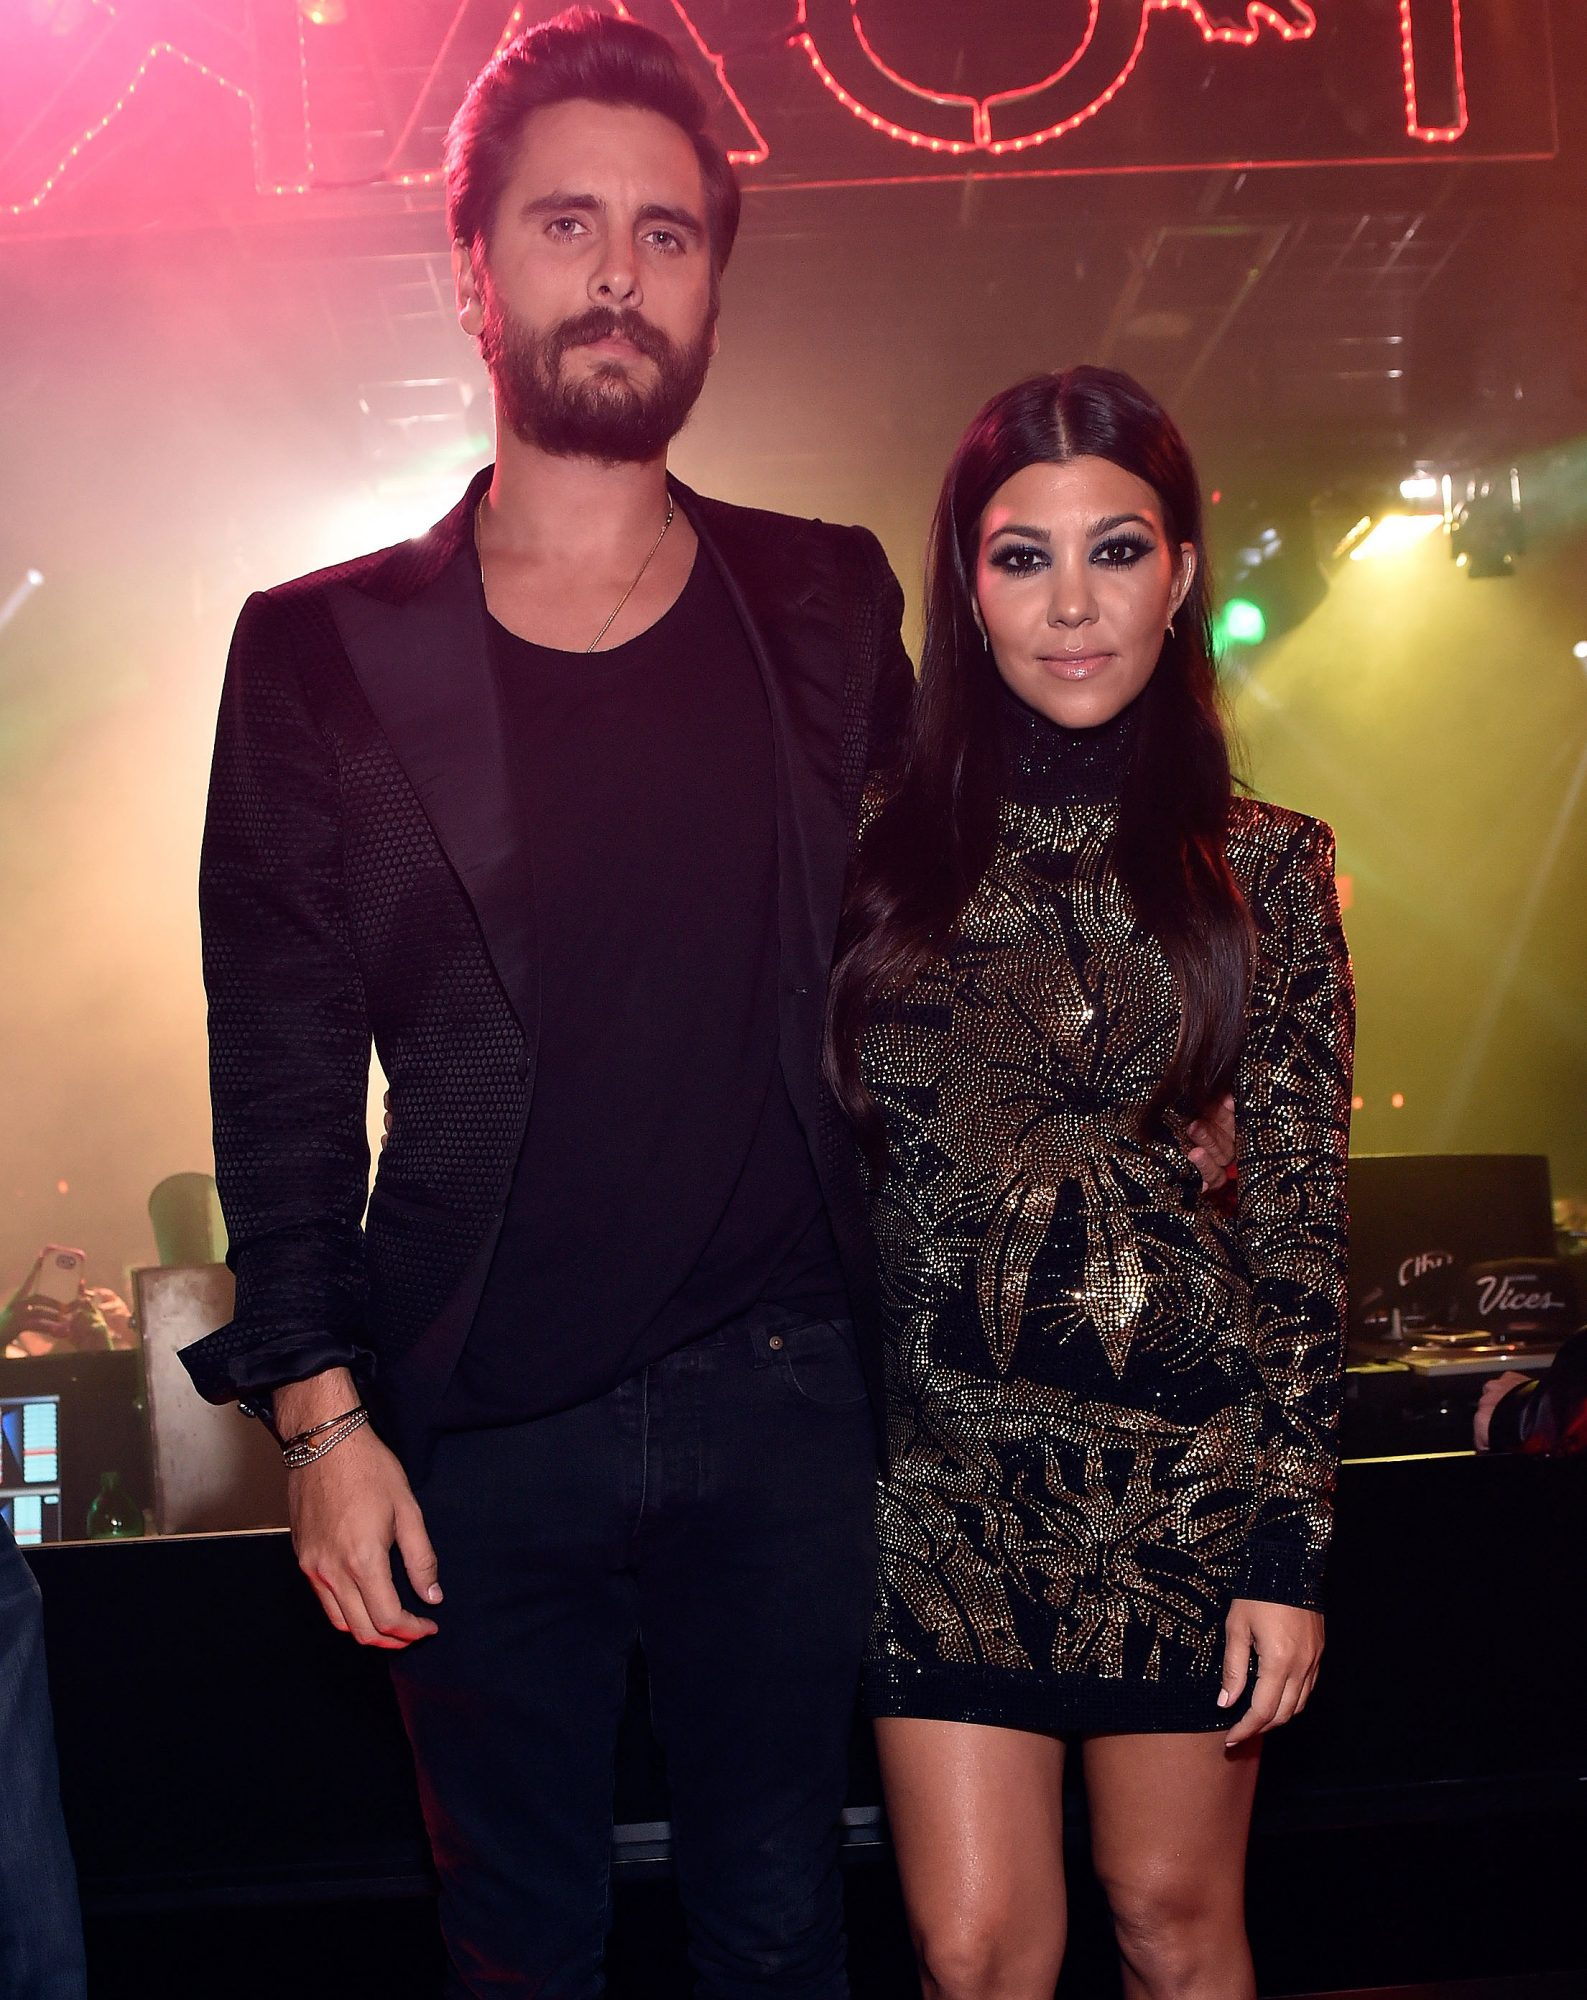 Scott Disick Celebrates His Birthday at 1 OAK Nightclub Las Vegas at The Mirage Hotel & Casino